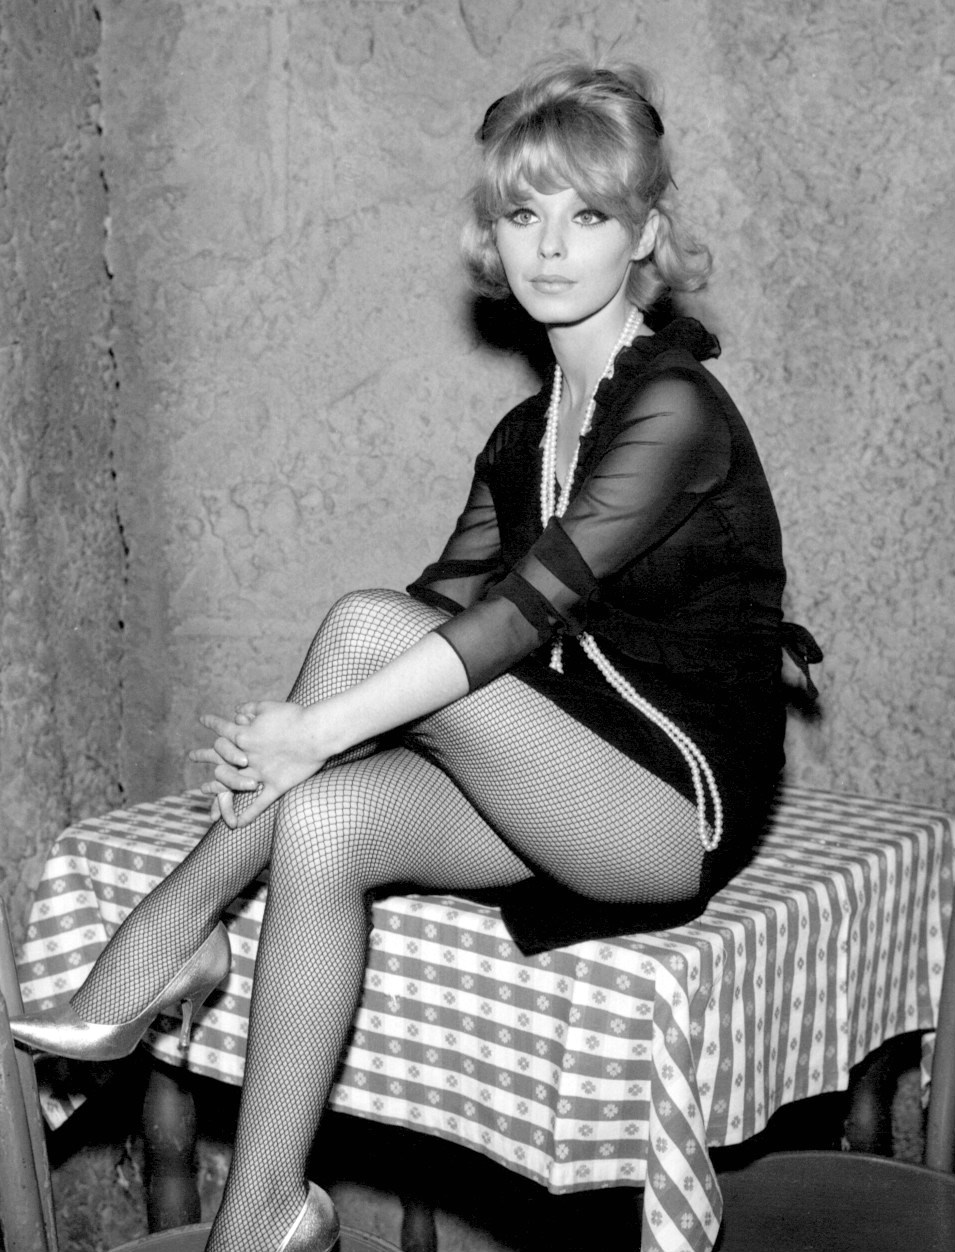 jill haworth cabaretjill haworth cabaret, jill haworth actress, jill haworth cause of death, jill haworth sal mineo, jill haworth photos, jill haworth imdb, jill haworth movies, jill haworth paul mccartney, jill haworth married, jill haworth john wayne, jill haworth photo gallery, jill haworth biography, jill haworth feet, jill haworth obituary, jill haworth measurements, jill haworth youtube